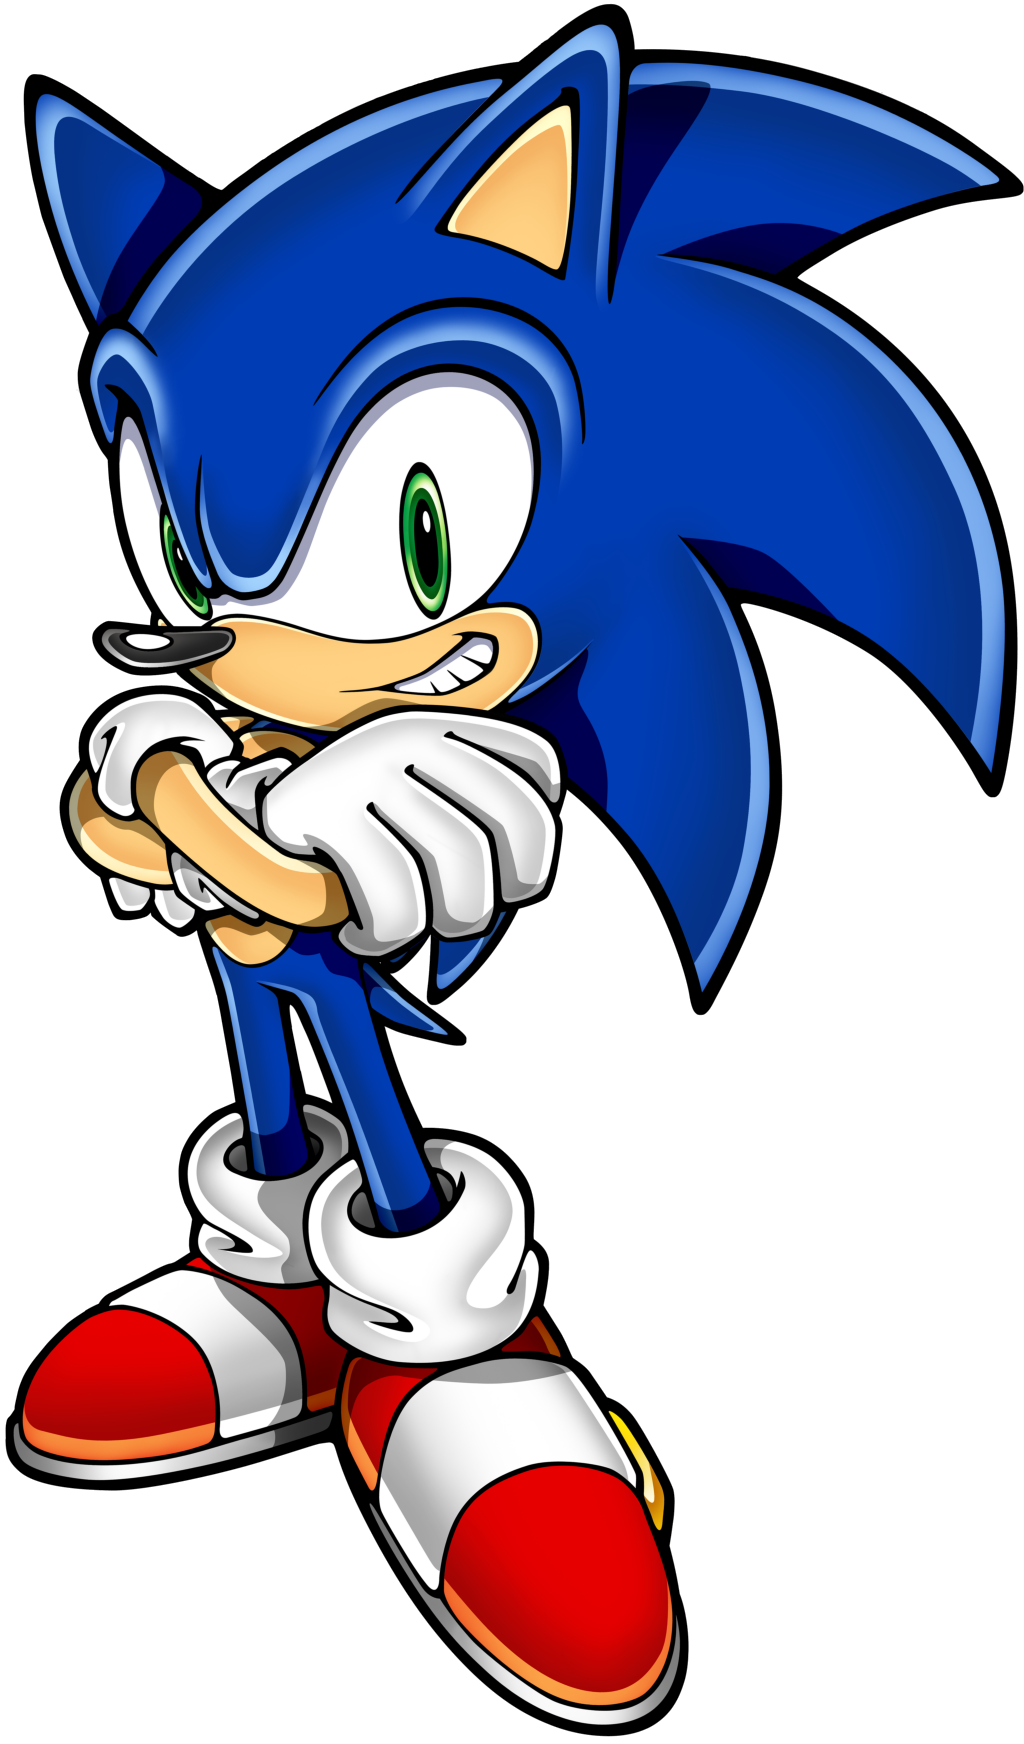 PNG File Name: Sonic The Hedg